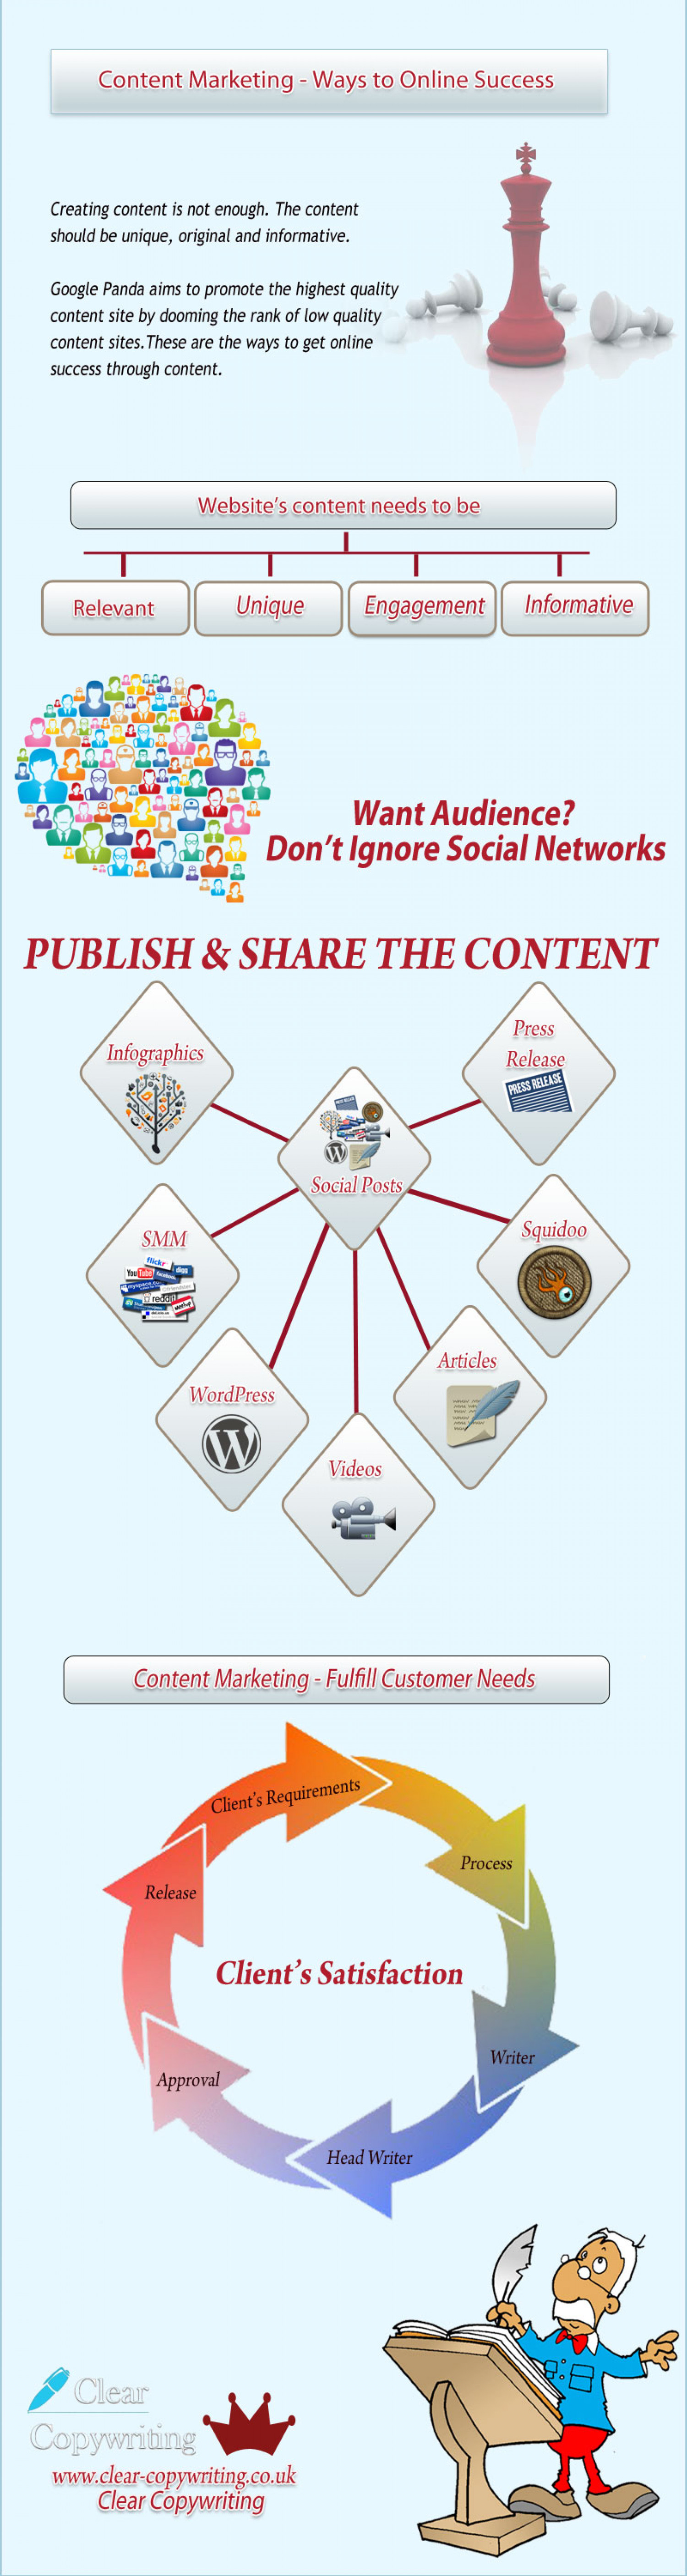 Content Marketing - Ways to Online Success Infographic